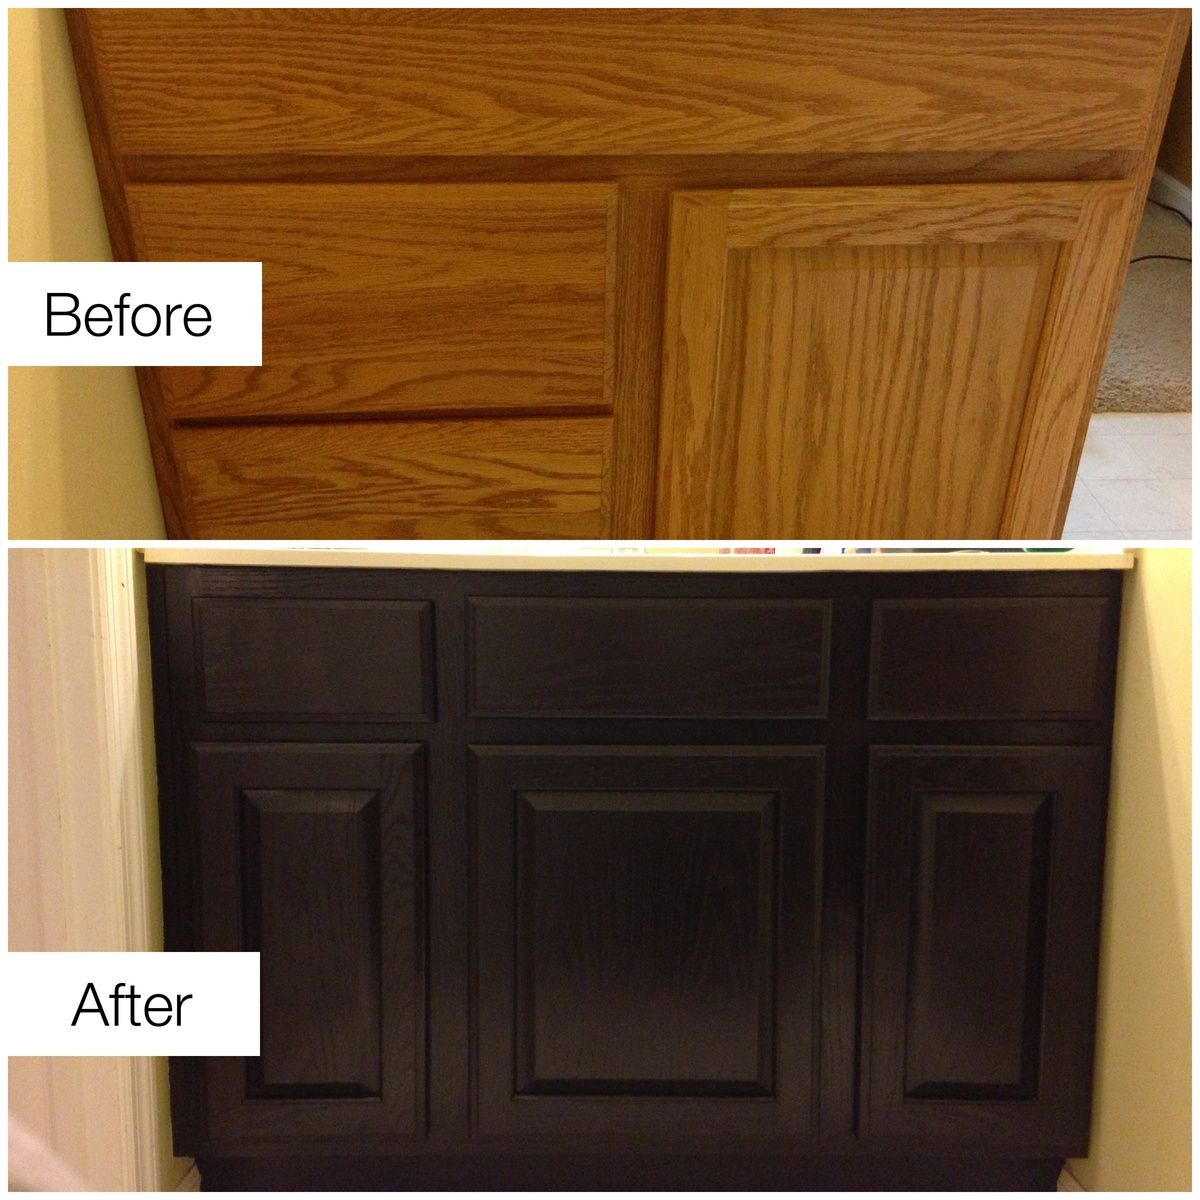 Staining Oak Cabinets Espresso Before After Staining Ugly Golden Oak Cabinets Remodeling